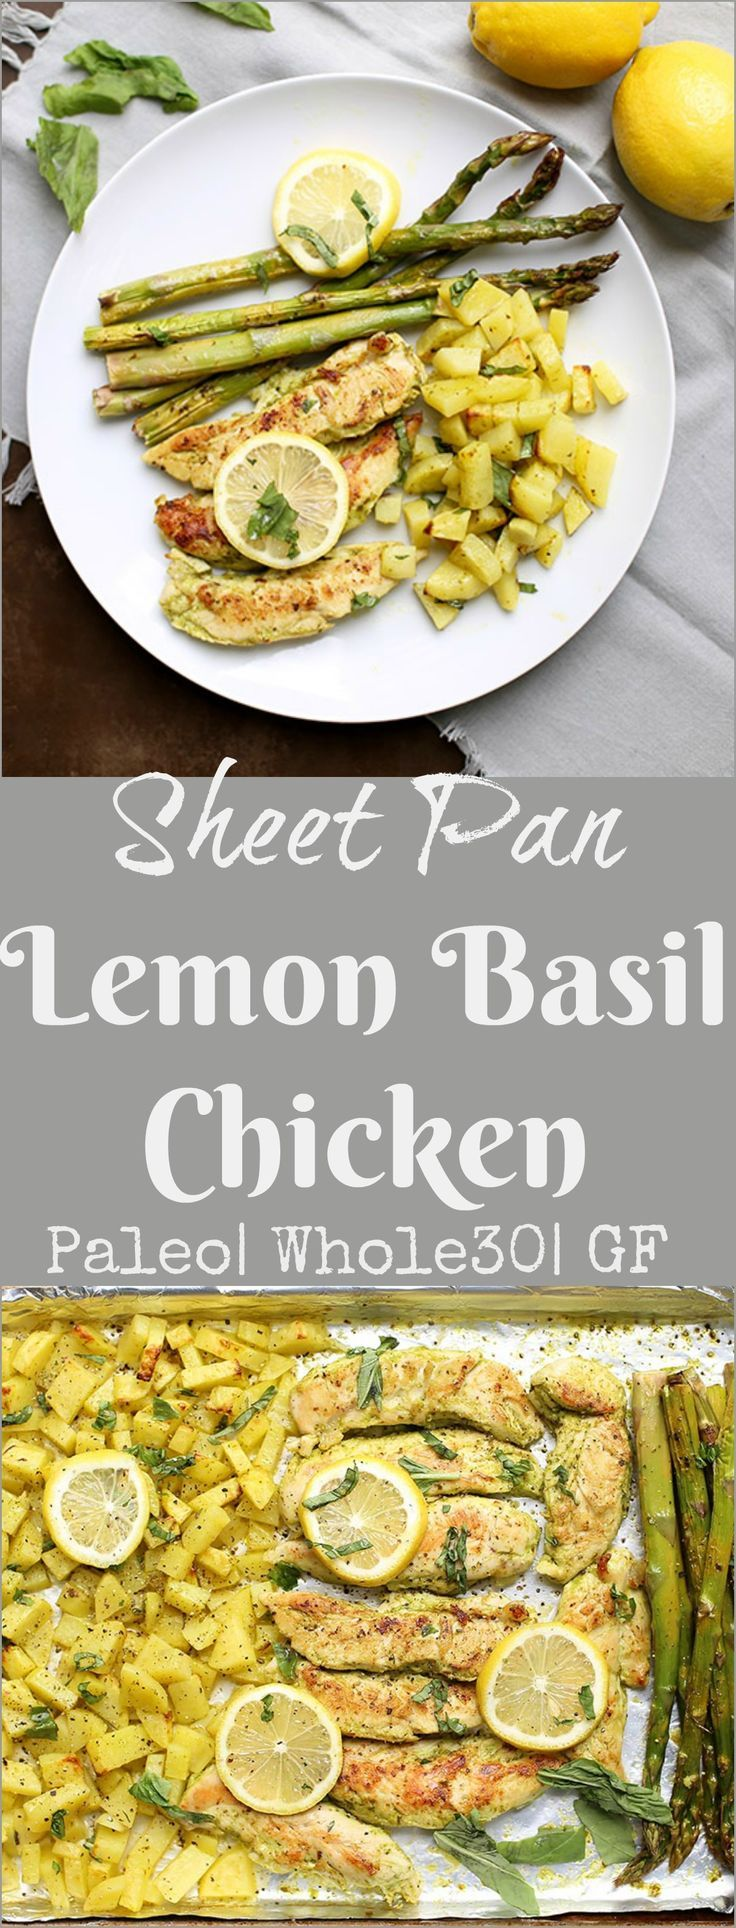 Super simple dinner made in less than 30 minutes! Pack in the flavor with this one pan meal!